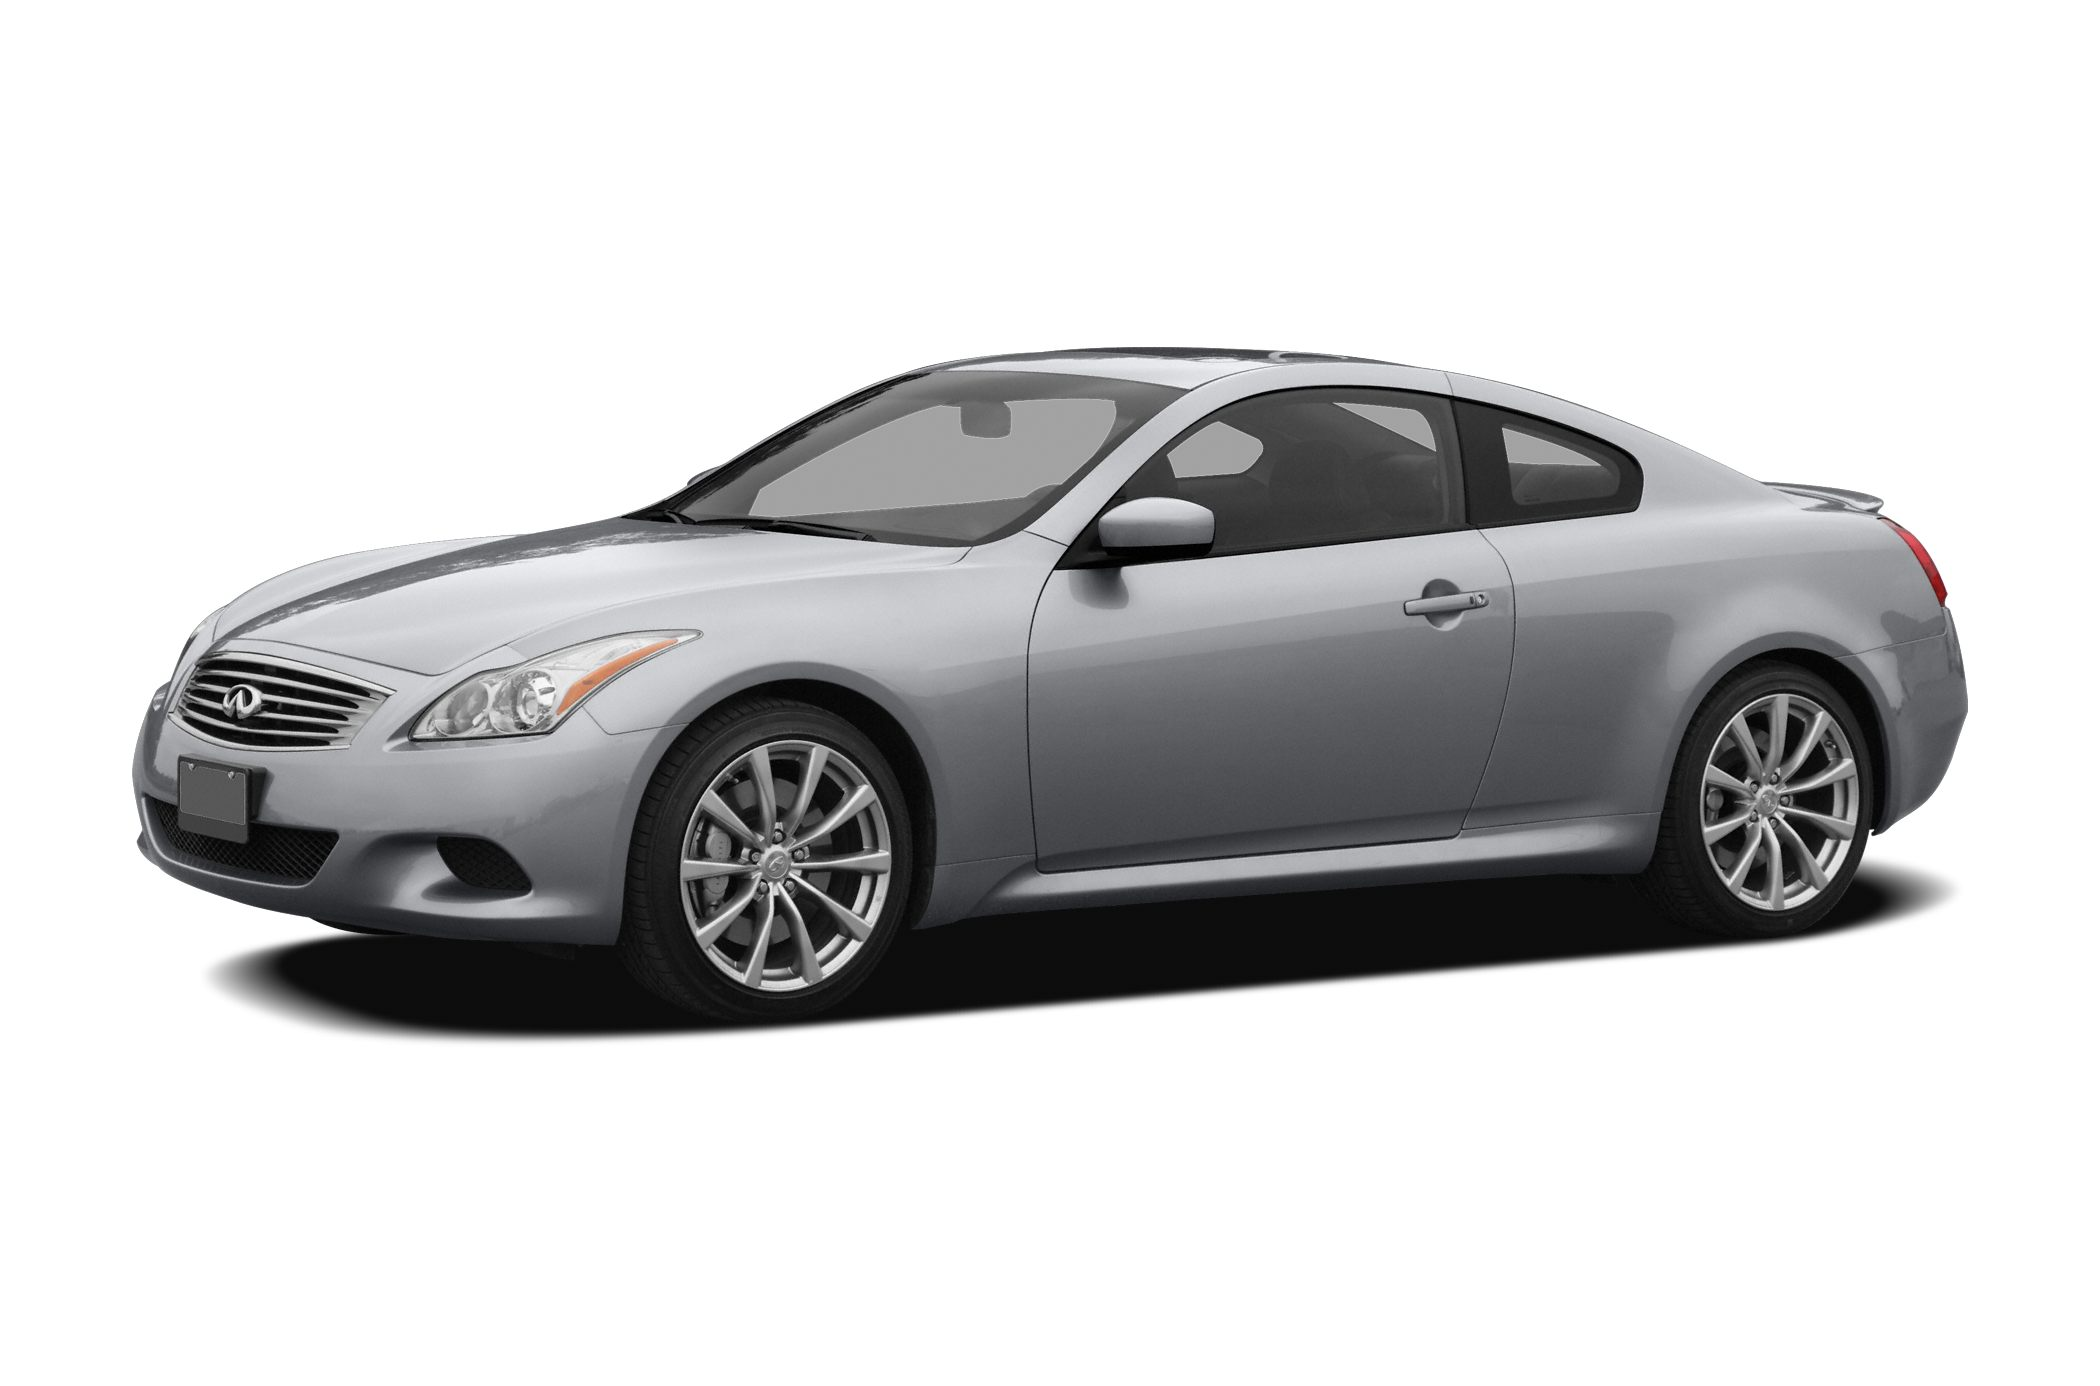 2008 Infiniti G37 Coupe for sale in Augusta for $15,923 with 78,615 miles.